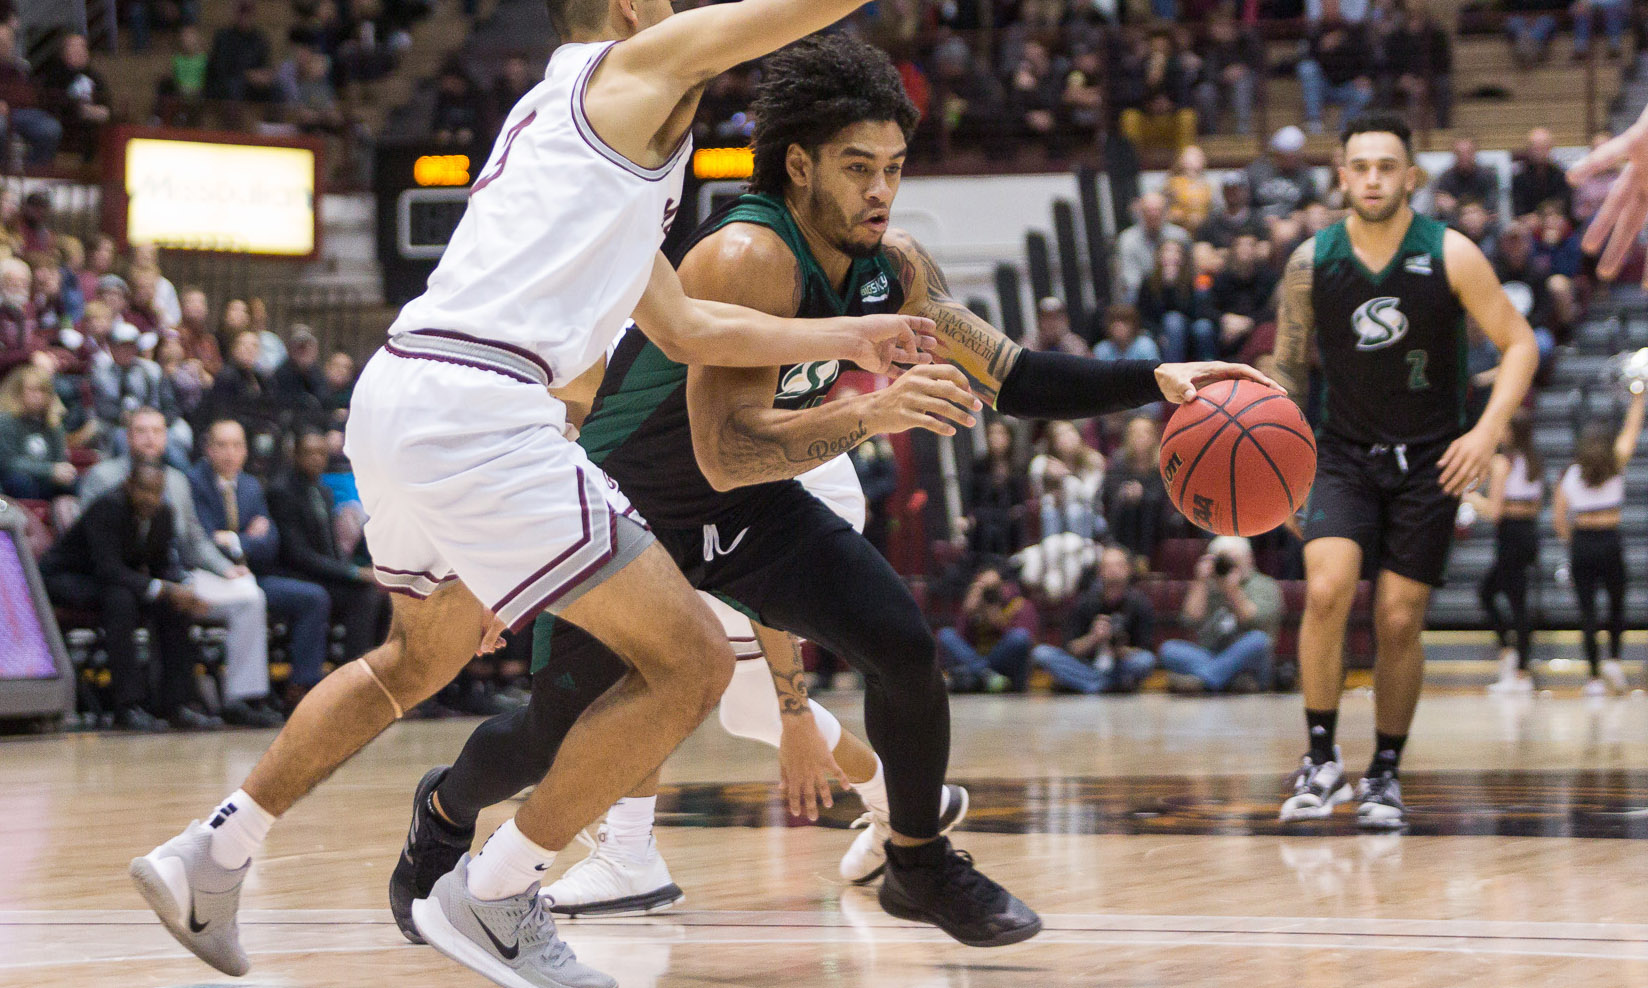 MEN'S BASKETBALL DROPS 52-50 ROAD HEARTBREAKER AT MONTANA